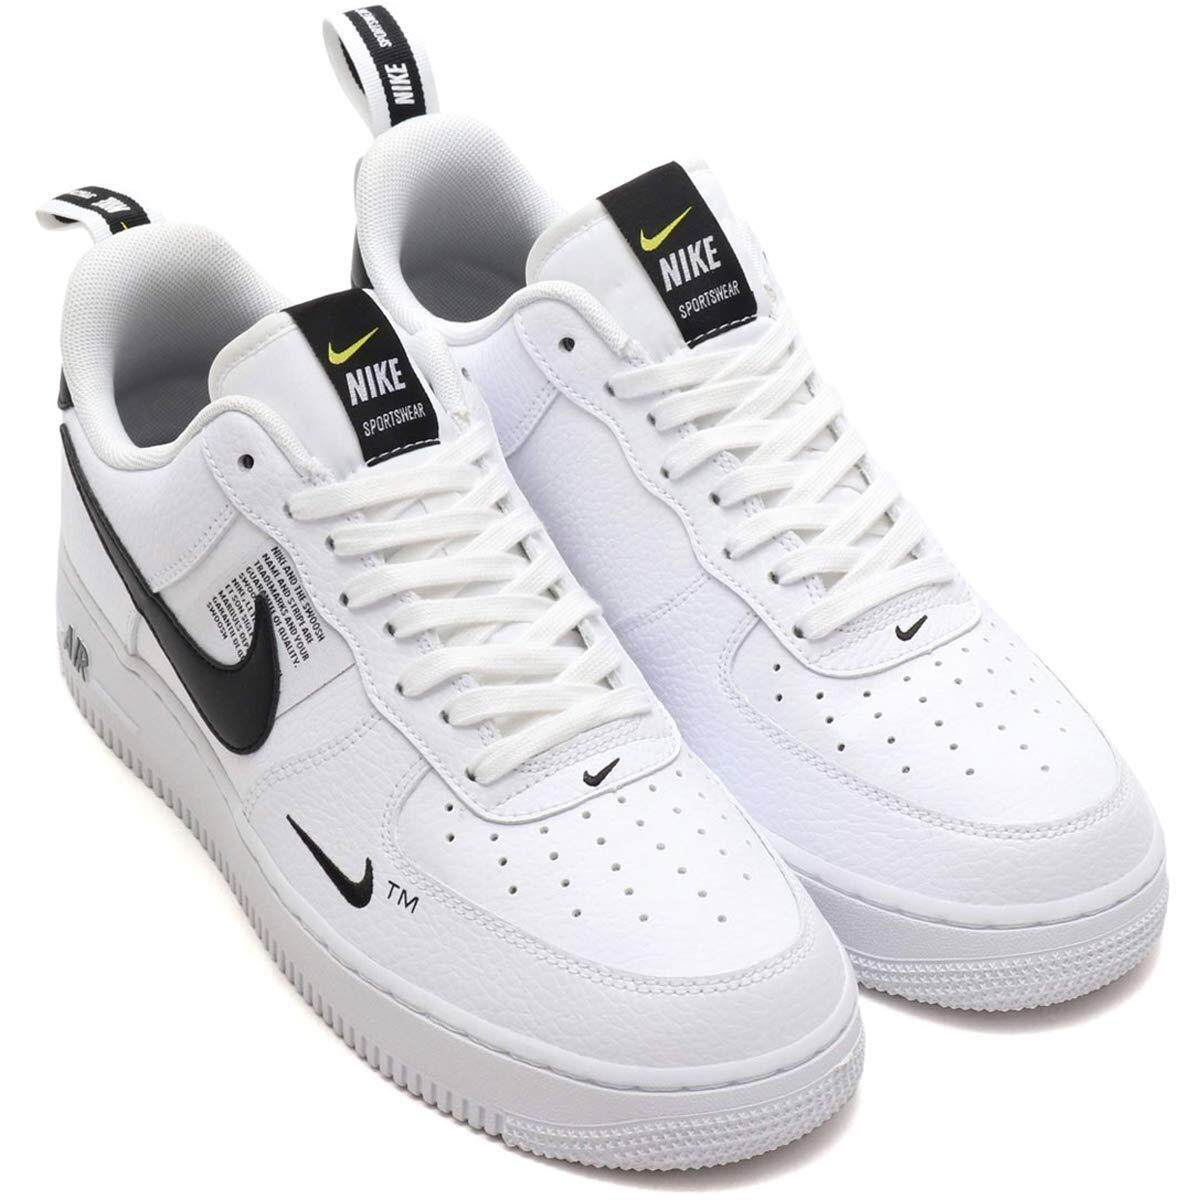 Classic Casual Shoes White Black Low N I K E Air Force One Air Force 1 07 Lv8 Utility Lace Aj7747 100 Overseas Direct Mail Dc0100